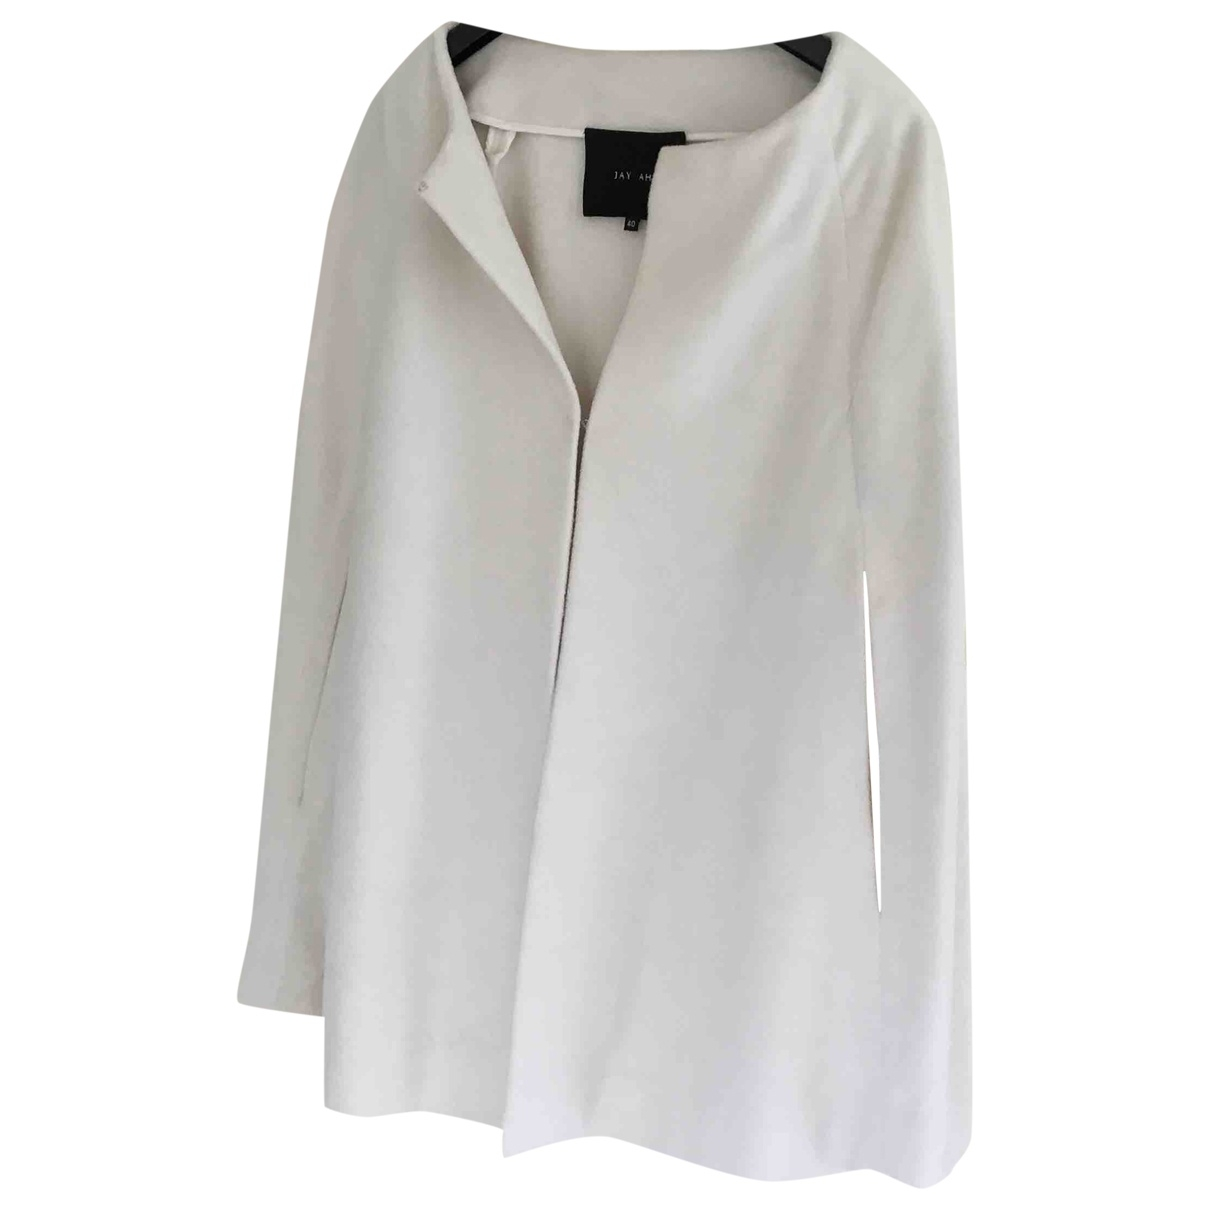 Jay Ahr \N White Wool jacket for Women 40 FR